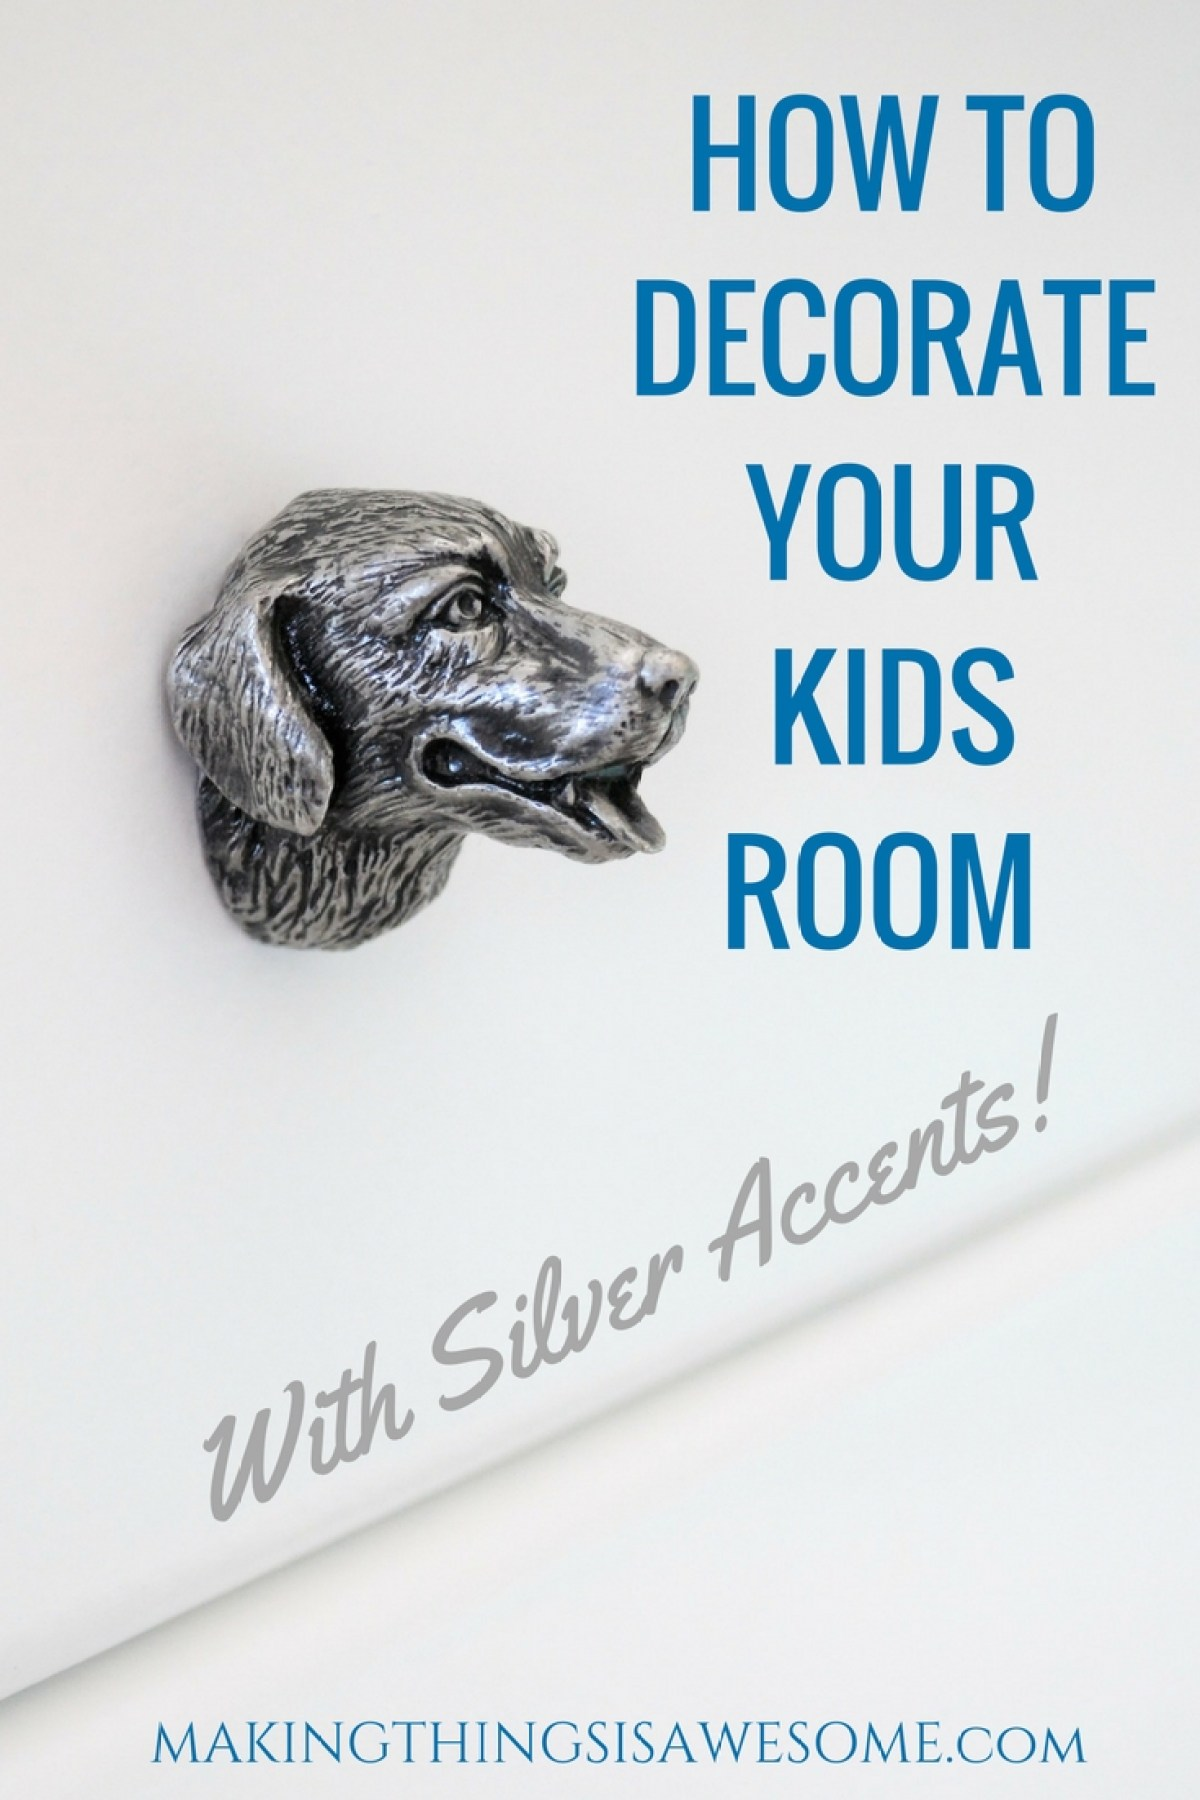 How to decorate your kids room with silver accents